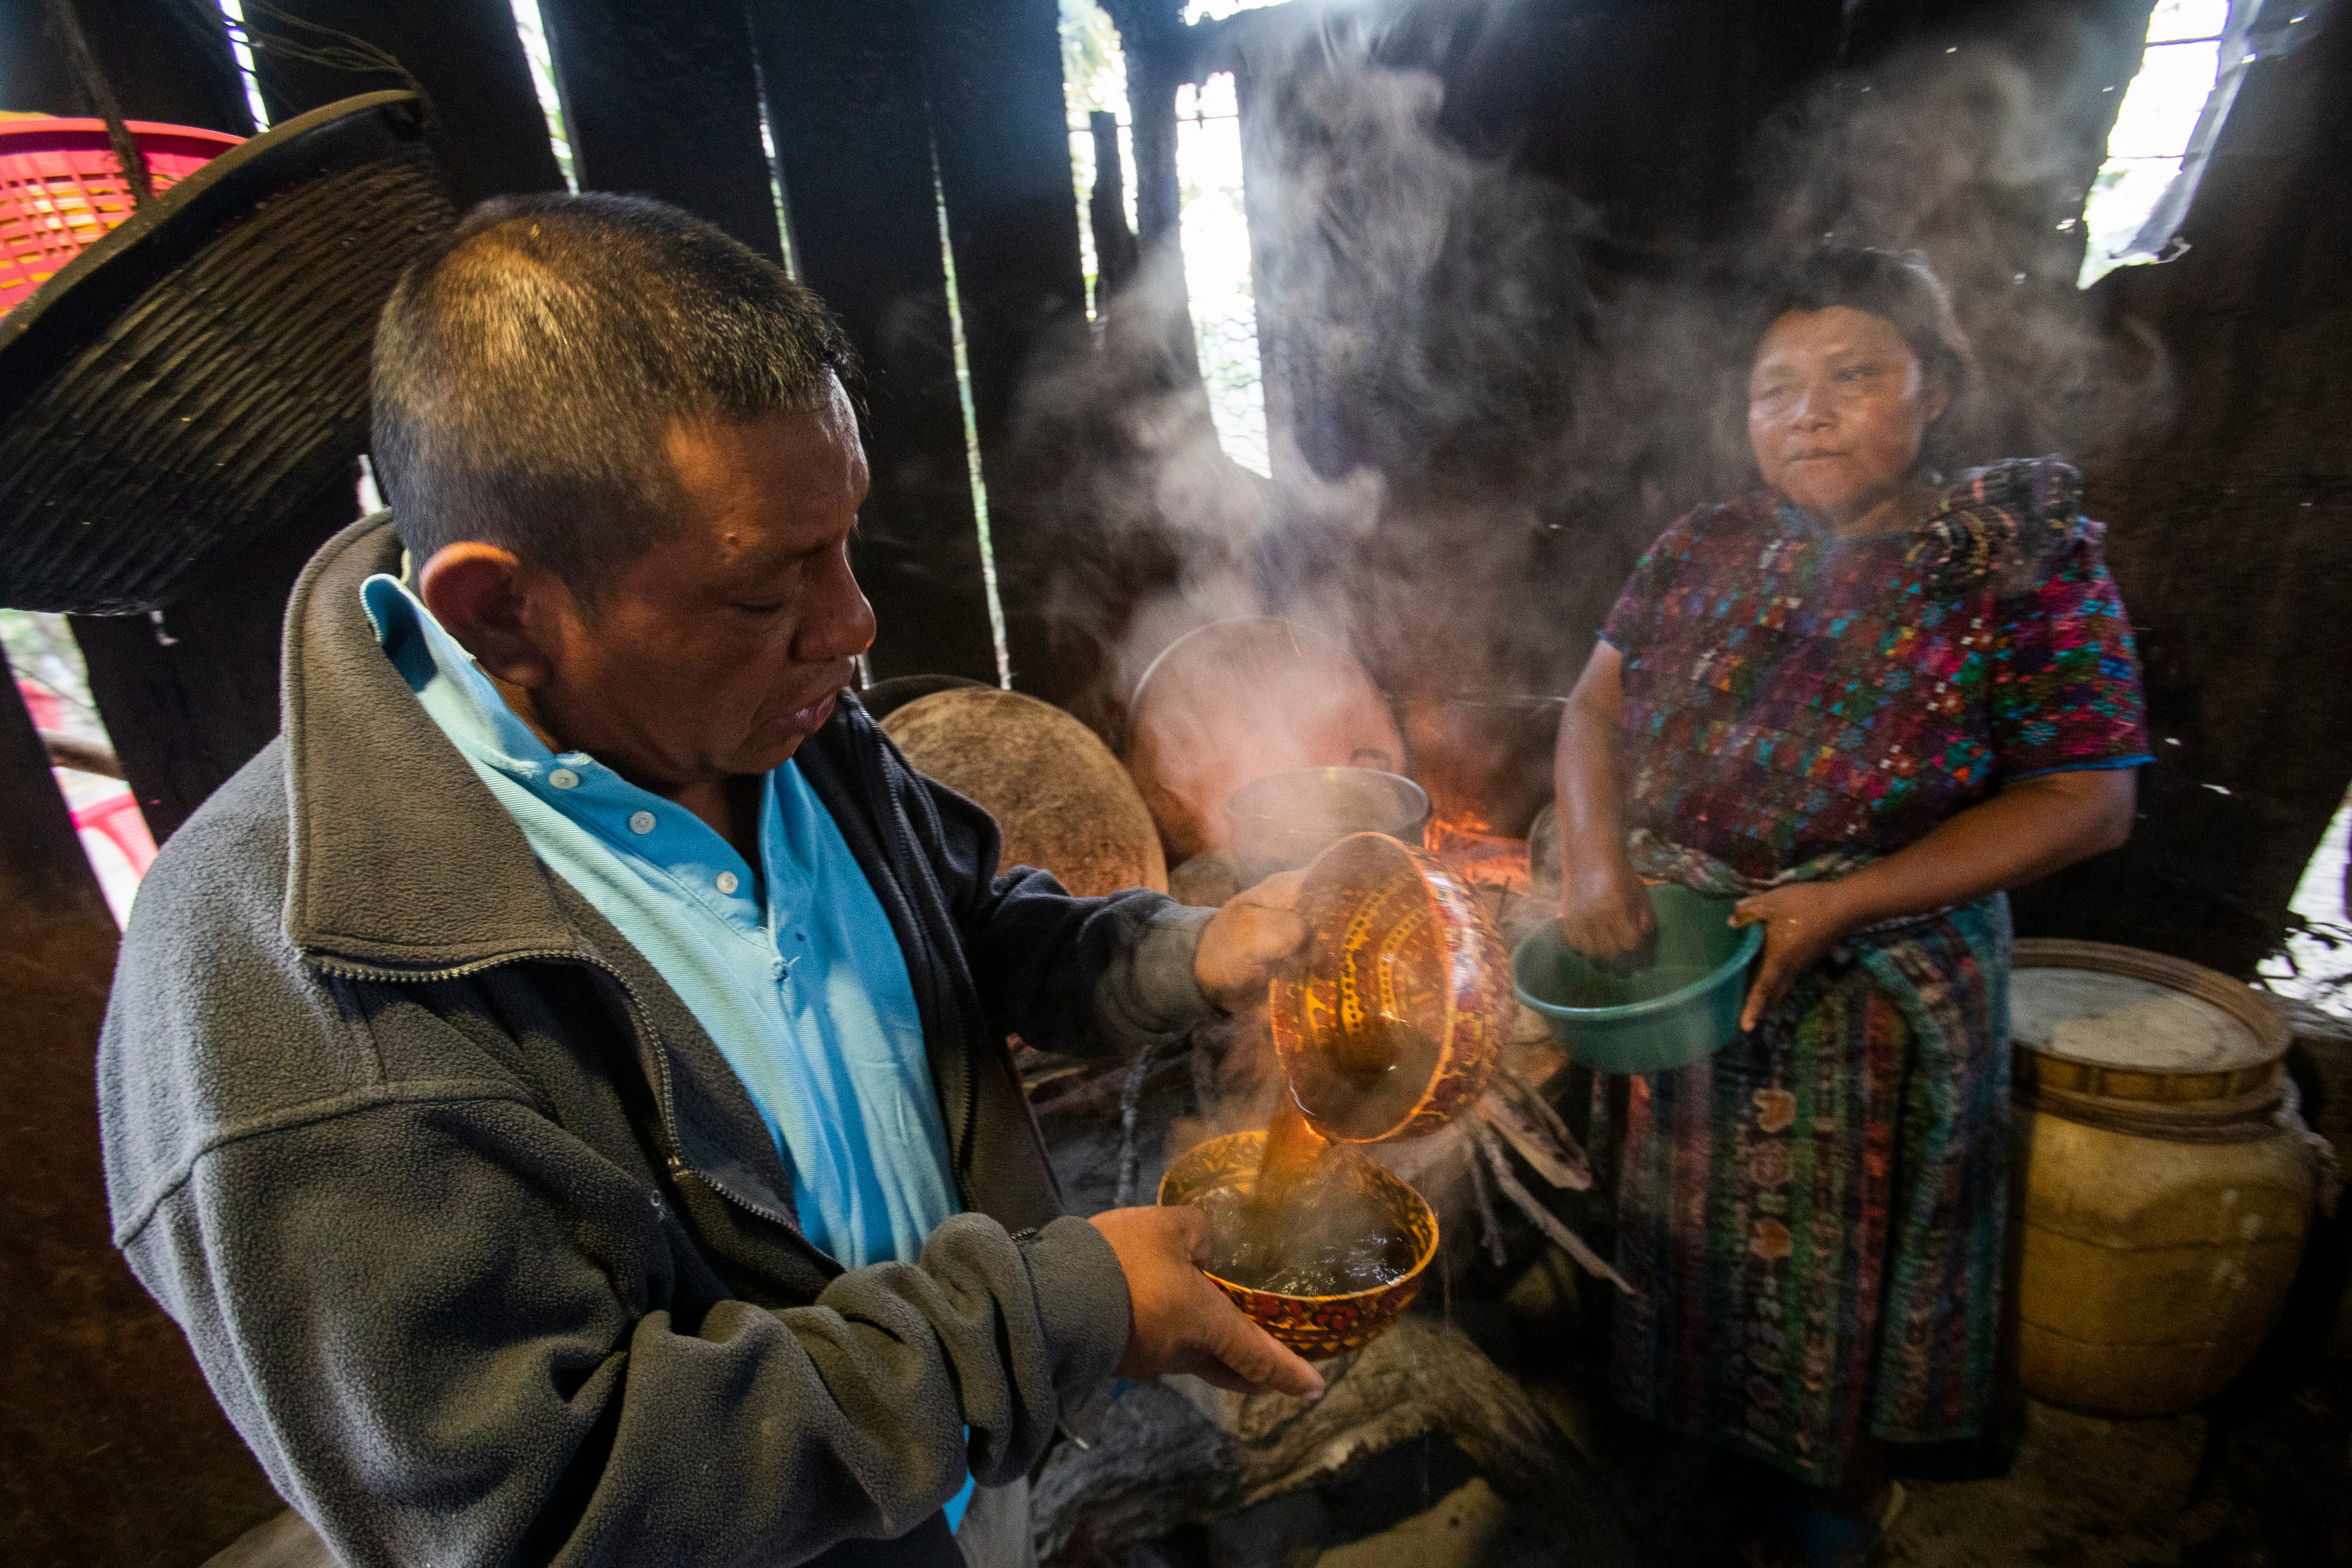 Maria Elvira Ramos serves her husband, Francisco Sical, coffee in a traditional Mayan bowl in early March. Her outdoor kitchen is flanked with timber. Sical promised her a kitchen of cement block with money he would make working in the USA, a dream he gave up in summer 2019.